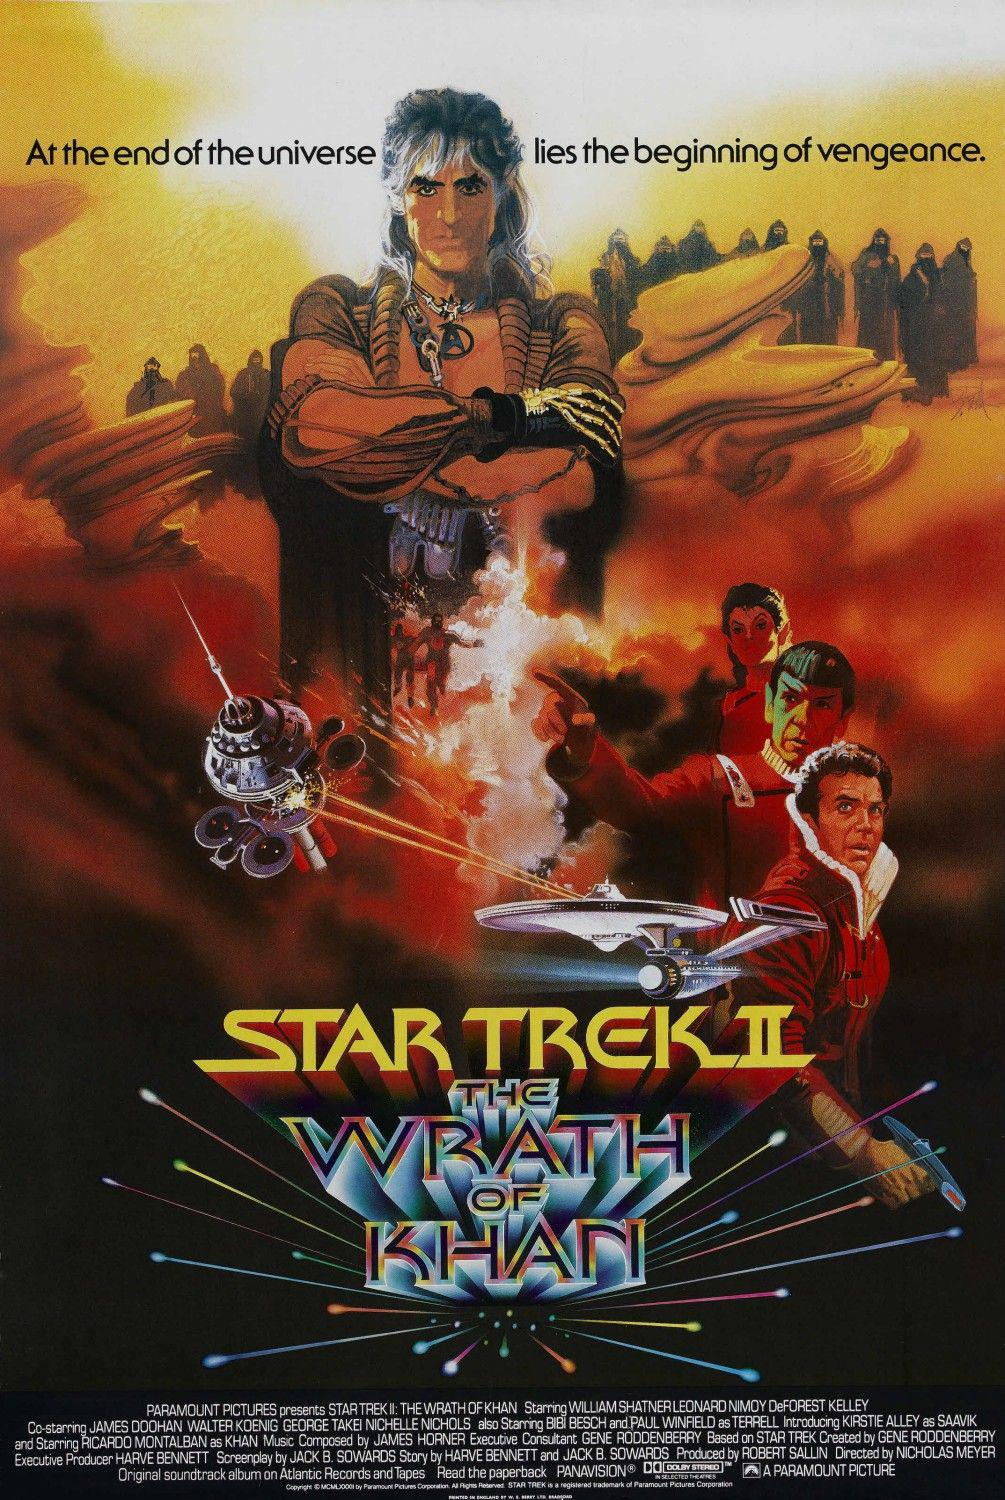 Star Trek 2 - Ira di Khan - Wrath of Khan - poster